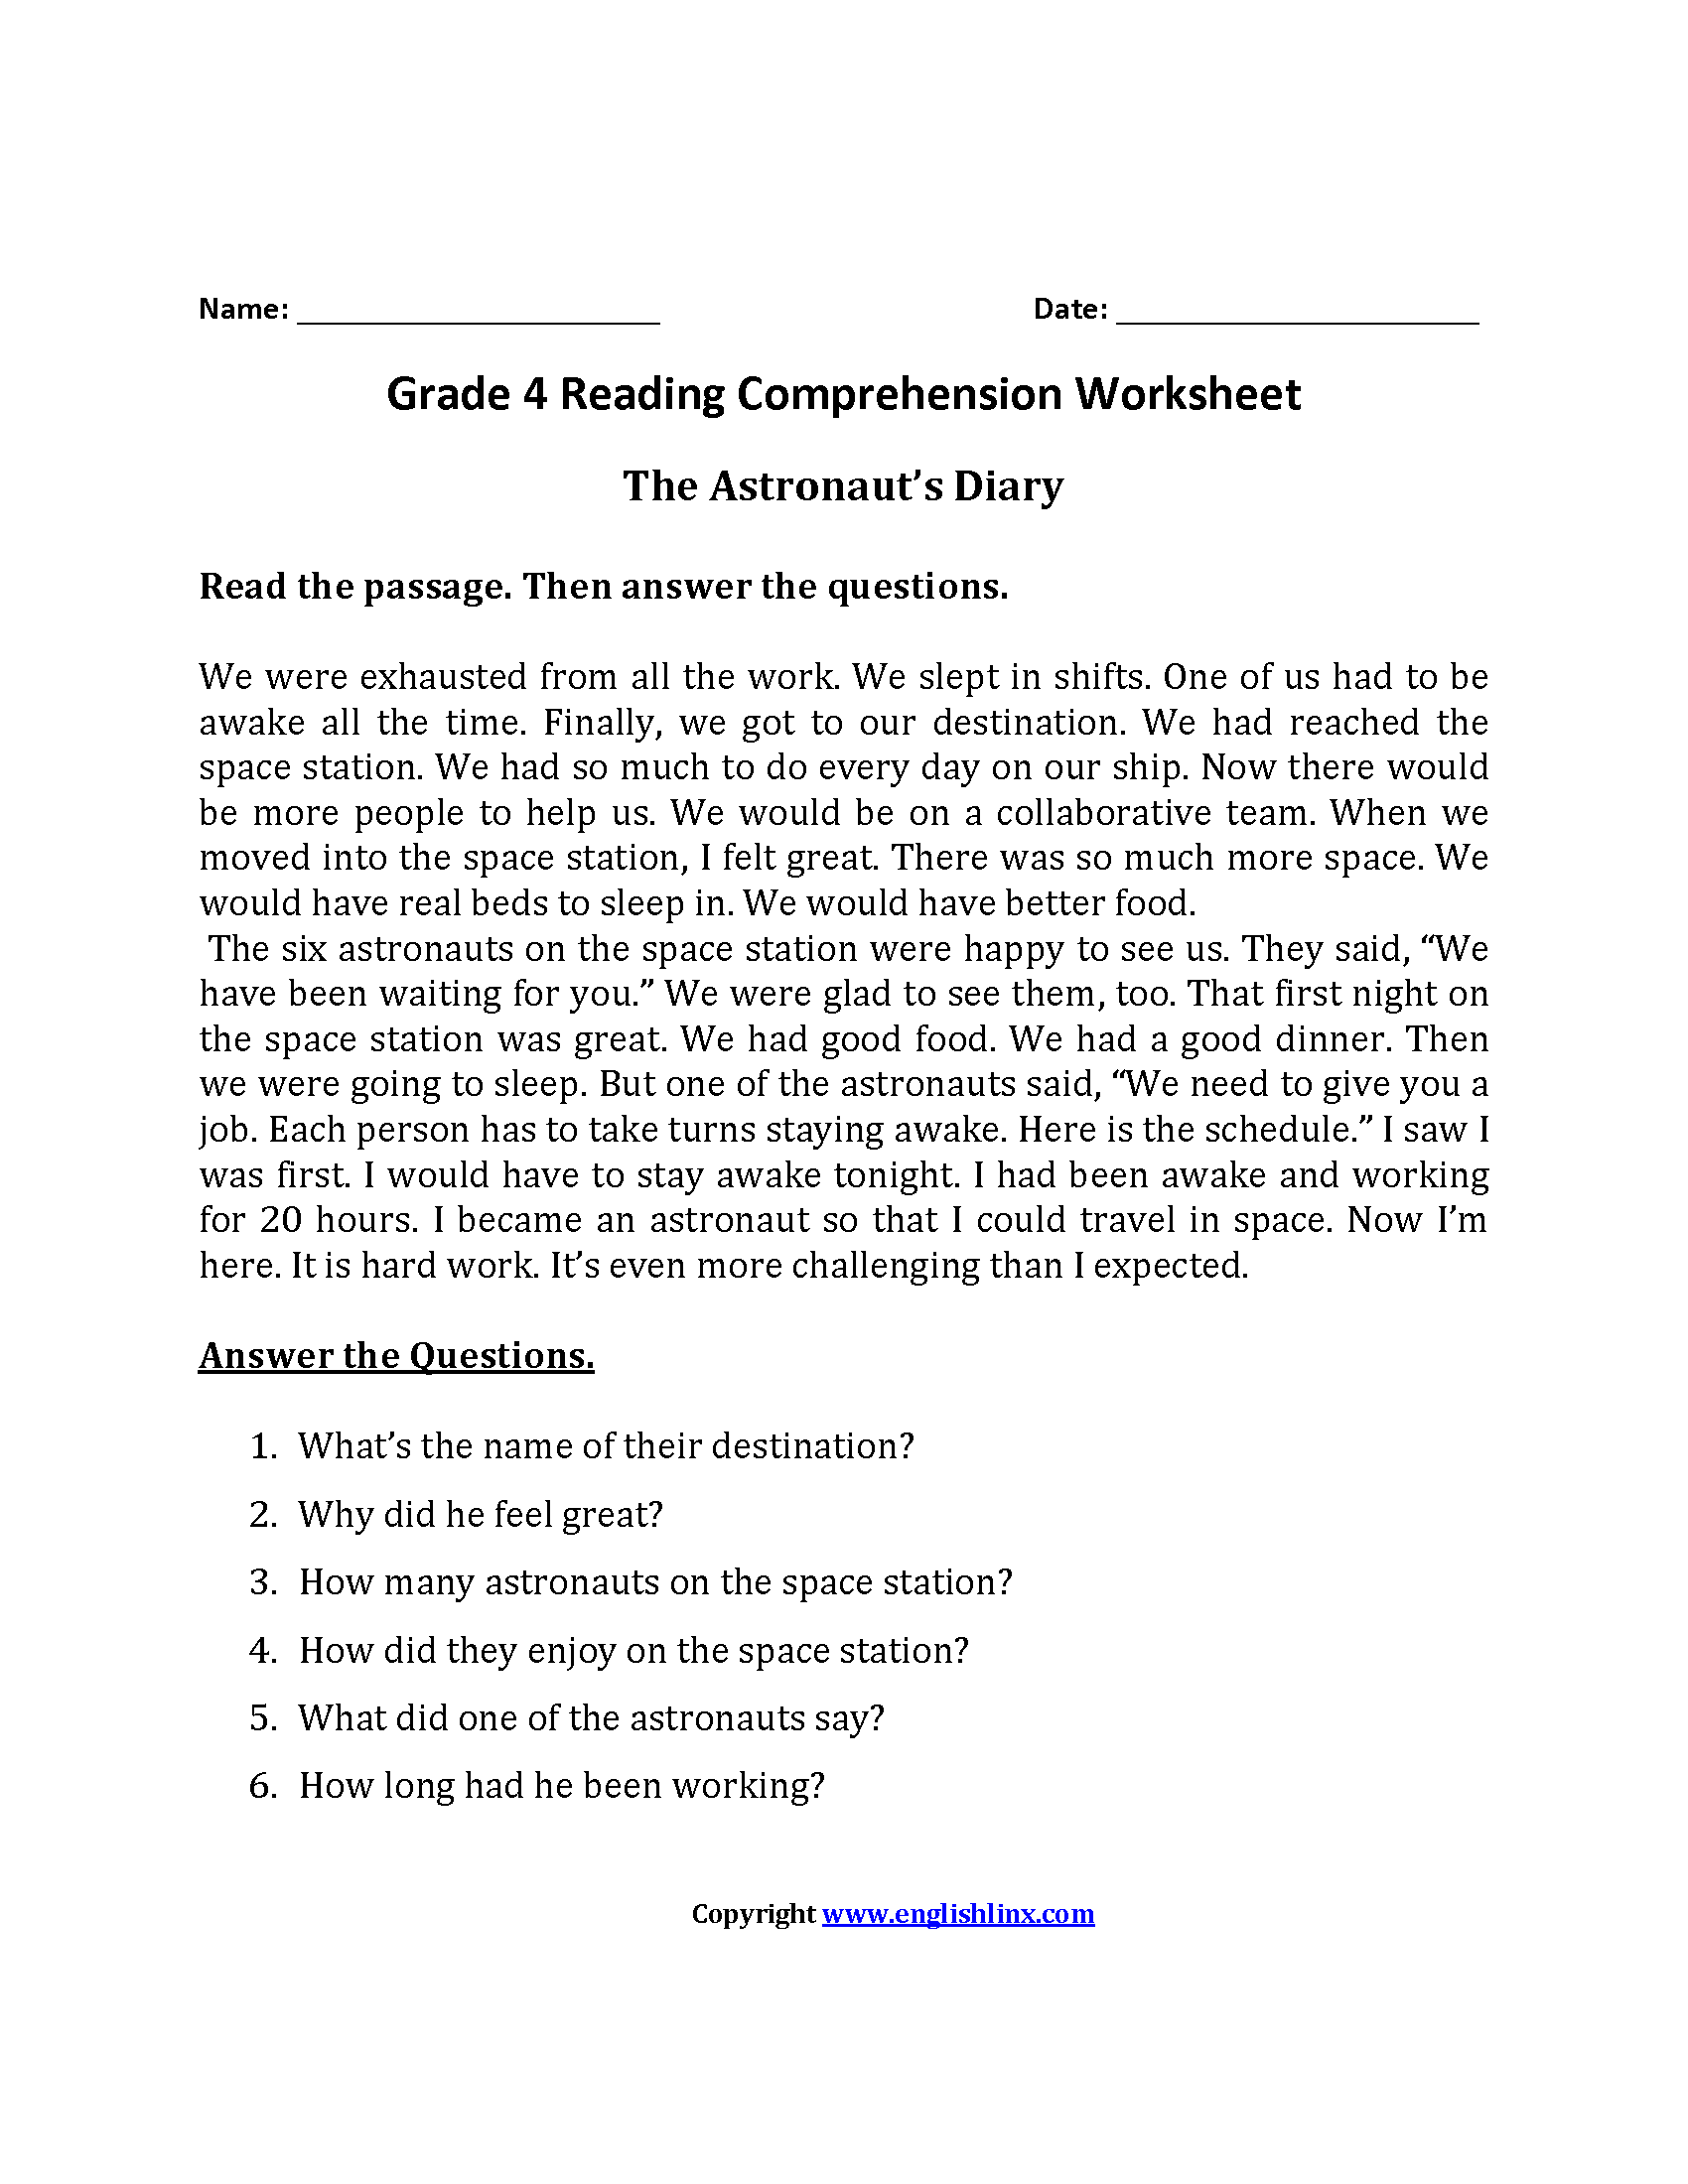 Worksheet Short Reading Passages For 4th Grade reading worksheets fourth grade worksheets